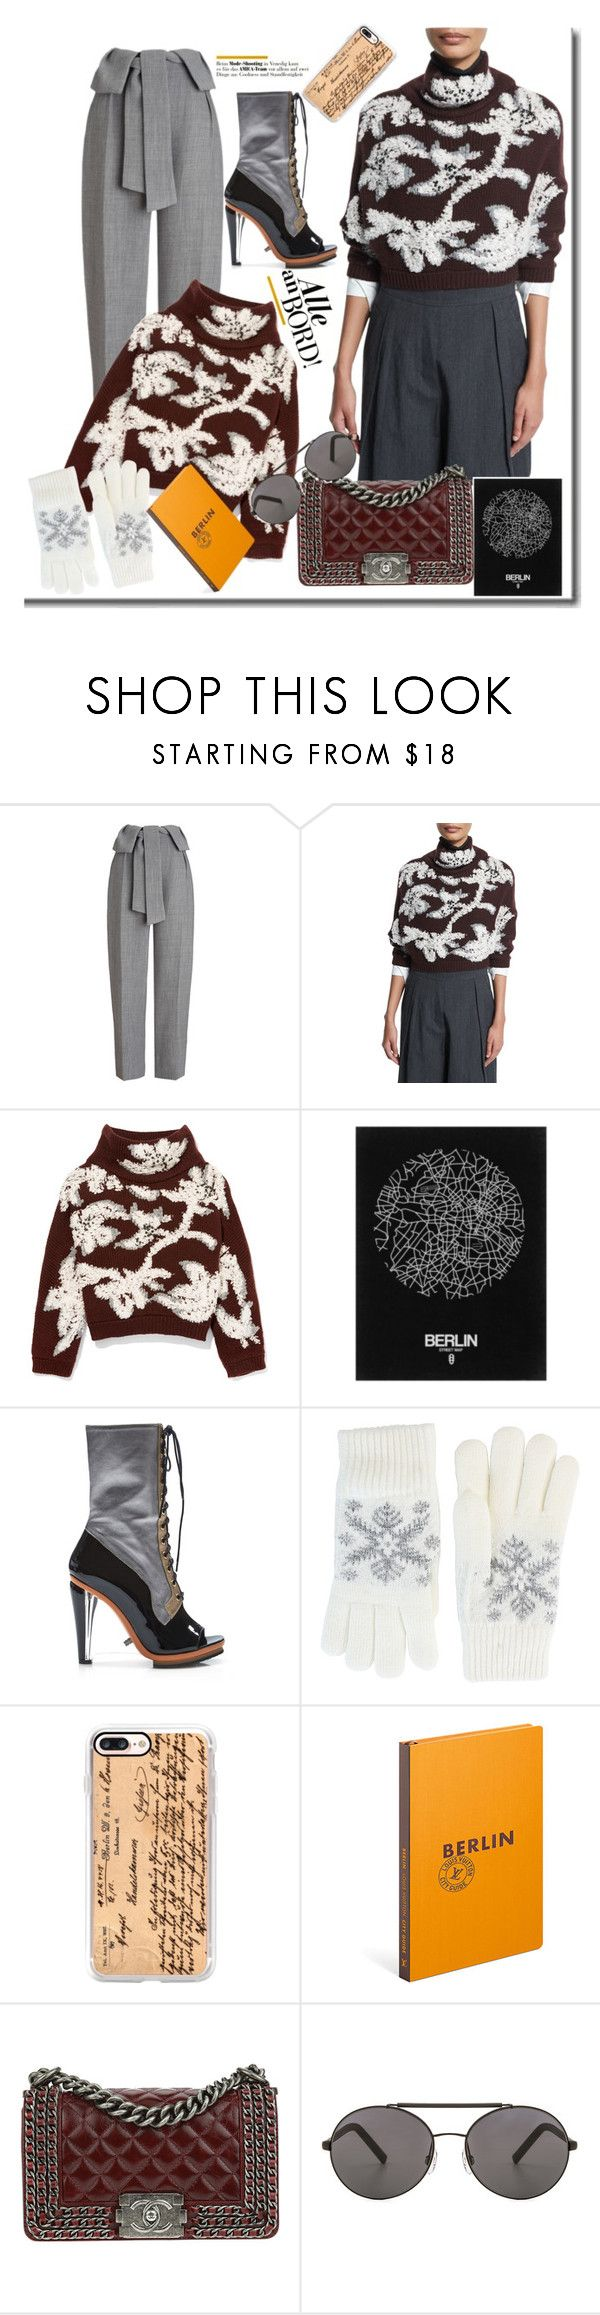 """Outfit travel to Berlin"" by faten-m-h ❤ liked on Polyvore featuring Whistles, Brunello Cucinelli, Rodarte, Fits, Casetify, Louis Vuitton, Chanel and Seafolly"